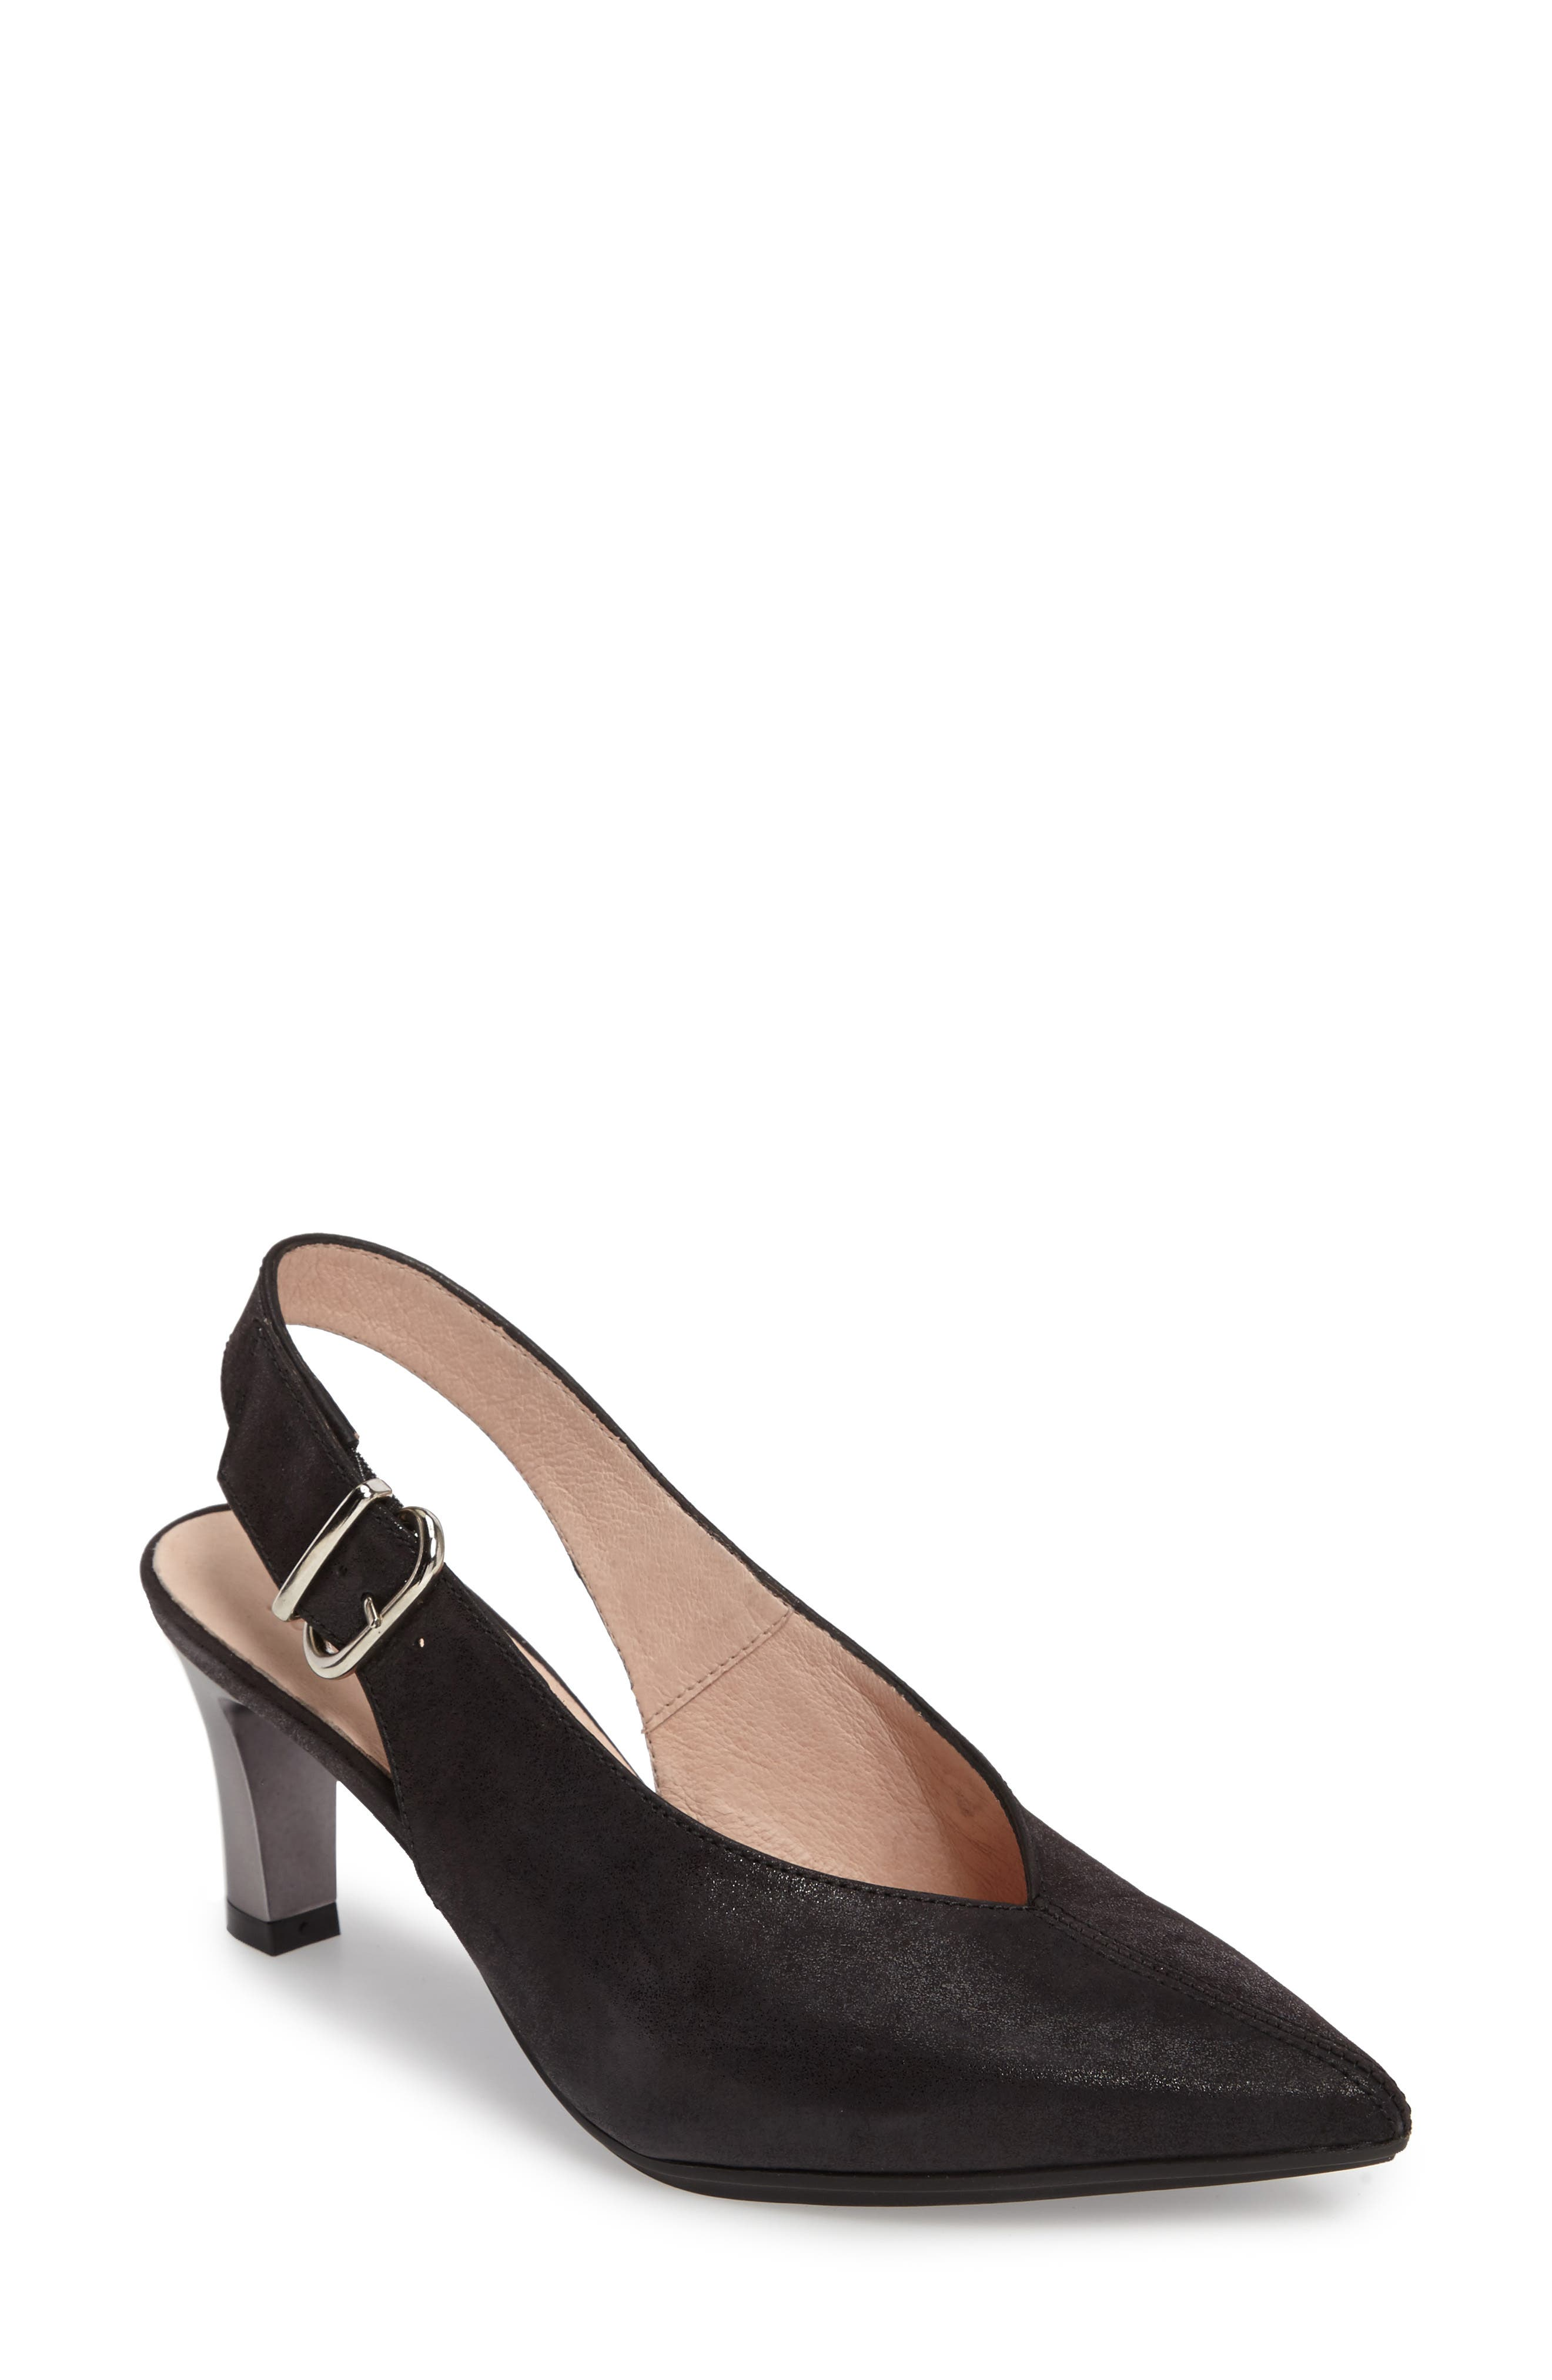 Honey Pointy Toe Slingback Pump,                             Main thumbnail 1, color,                             001